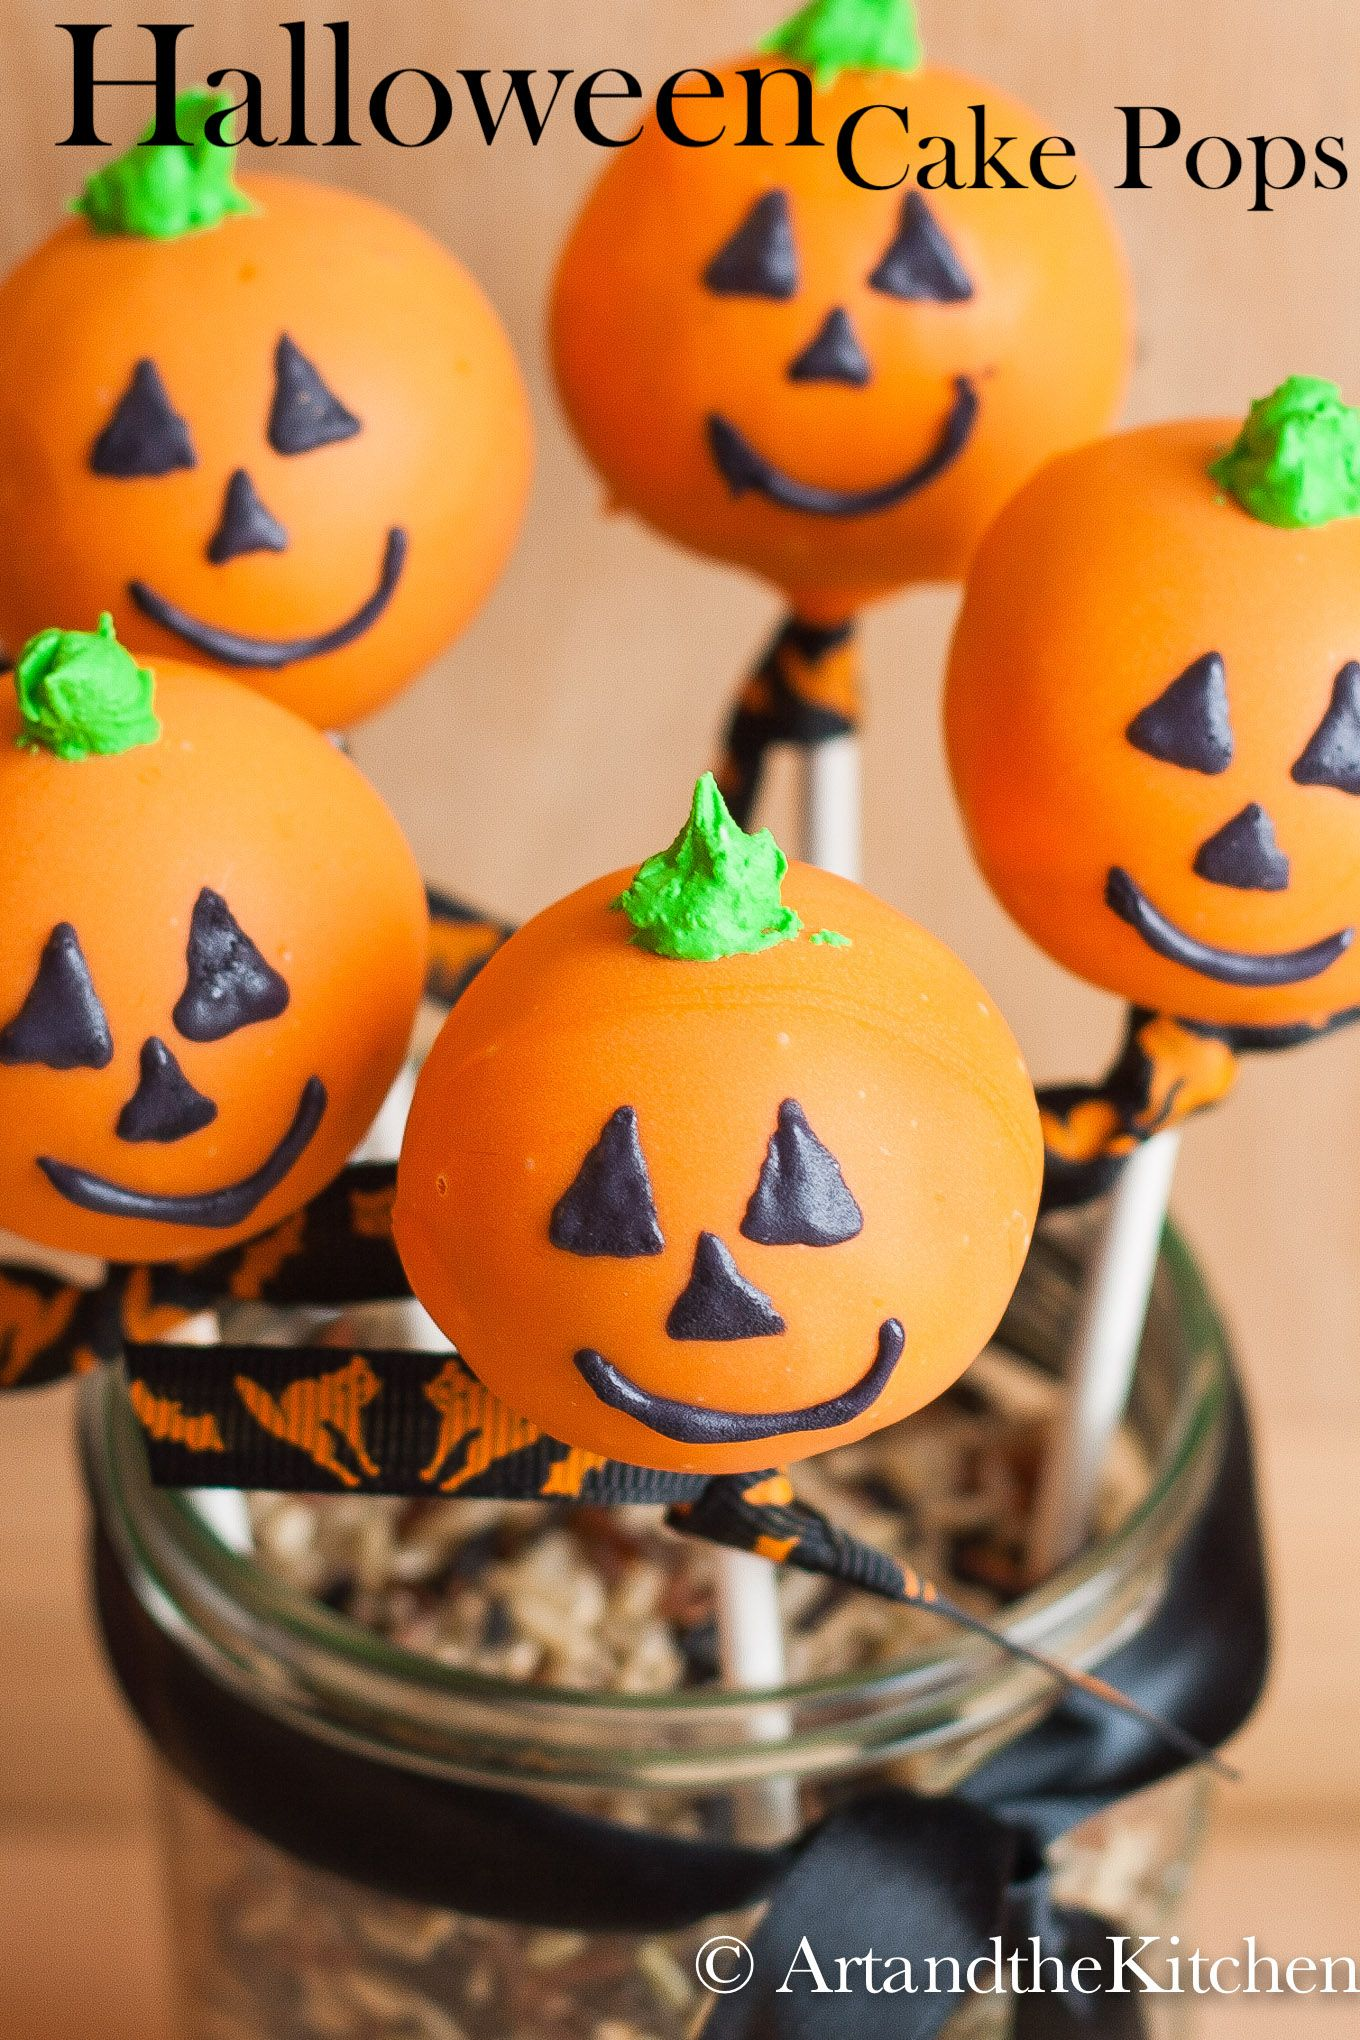 Delicious Halloween Cake Pops Decorated Like A Jack O Lanterns